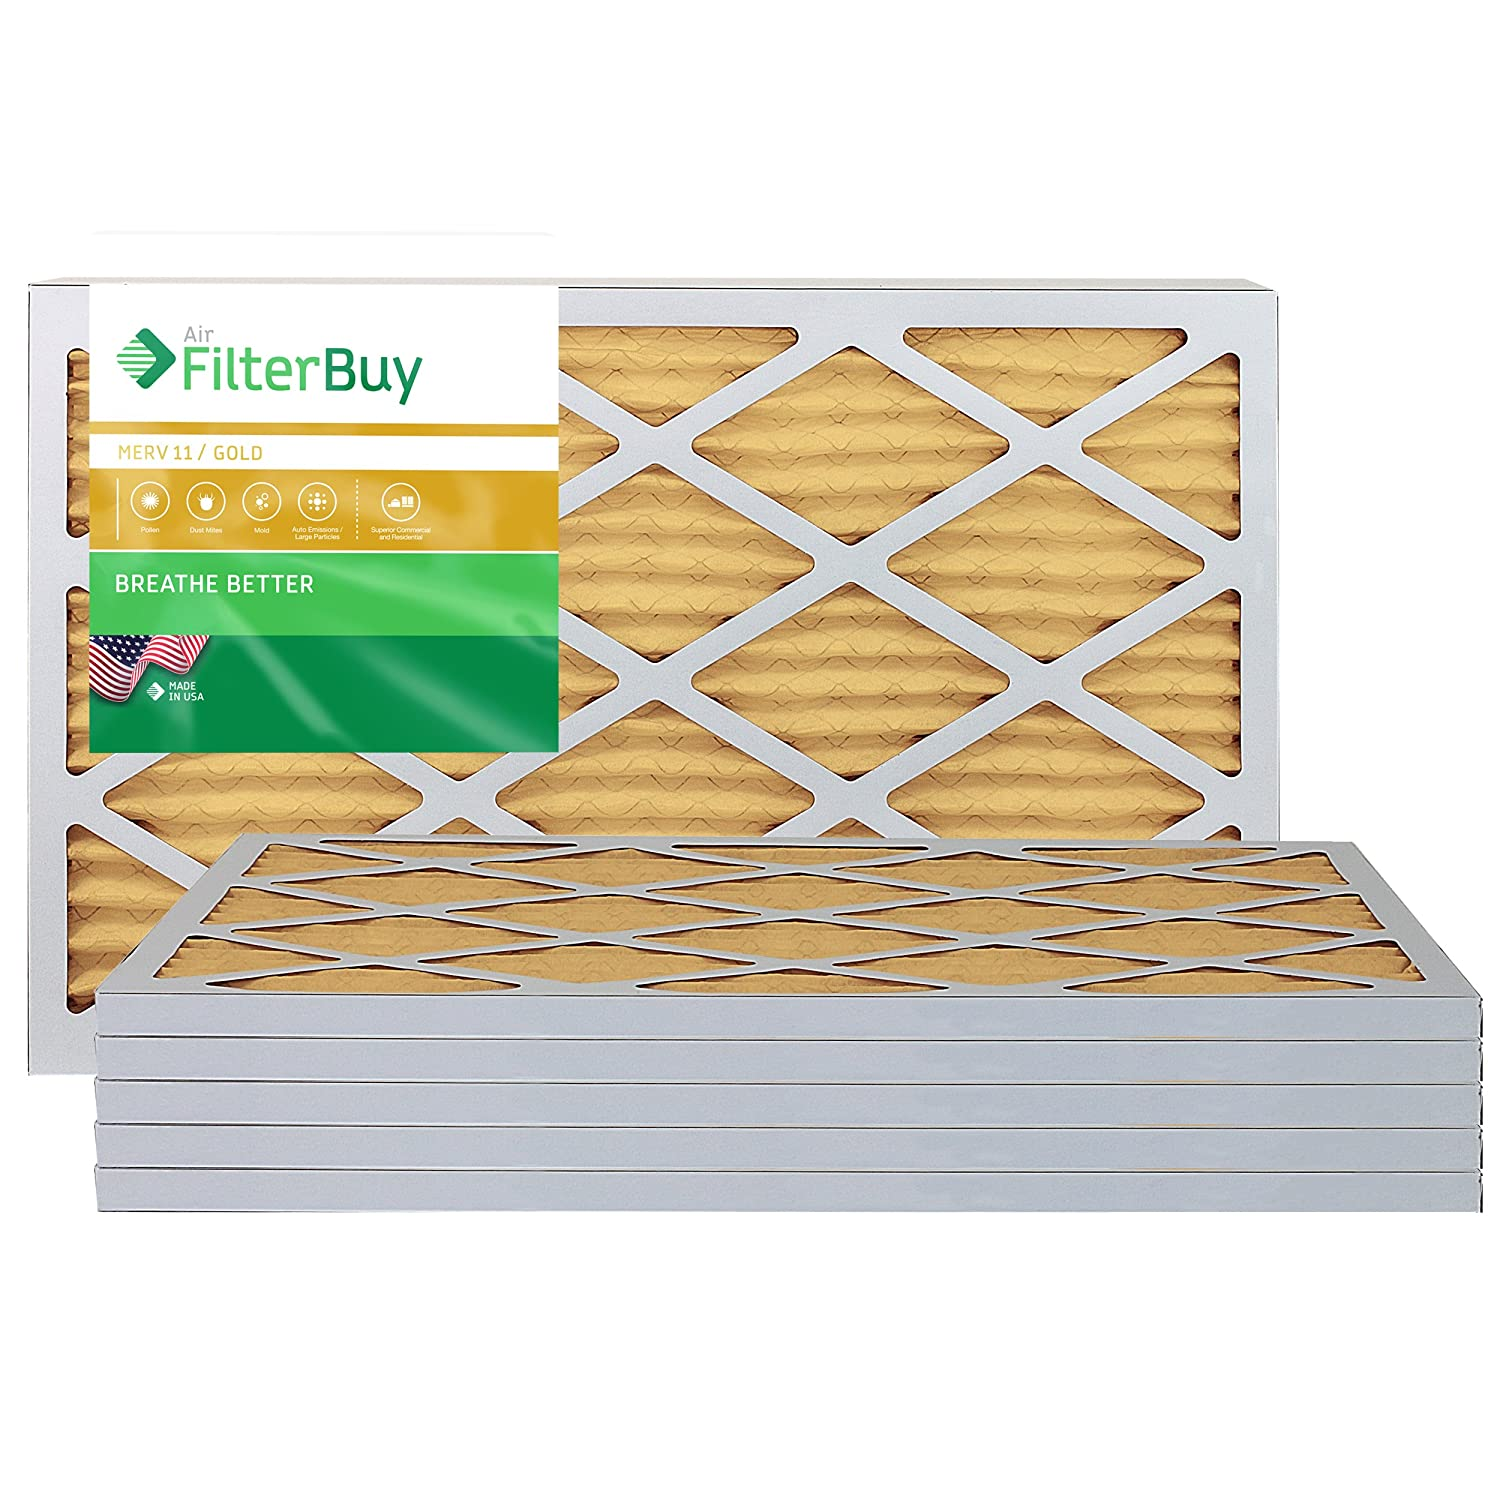 FilterBuy 14x24x1 MERV 11 Pleated AC Furnace Air Filter, (Pack of 6 Filters), 14x24x1 – Gold